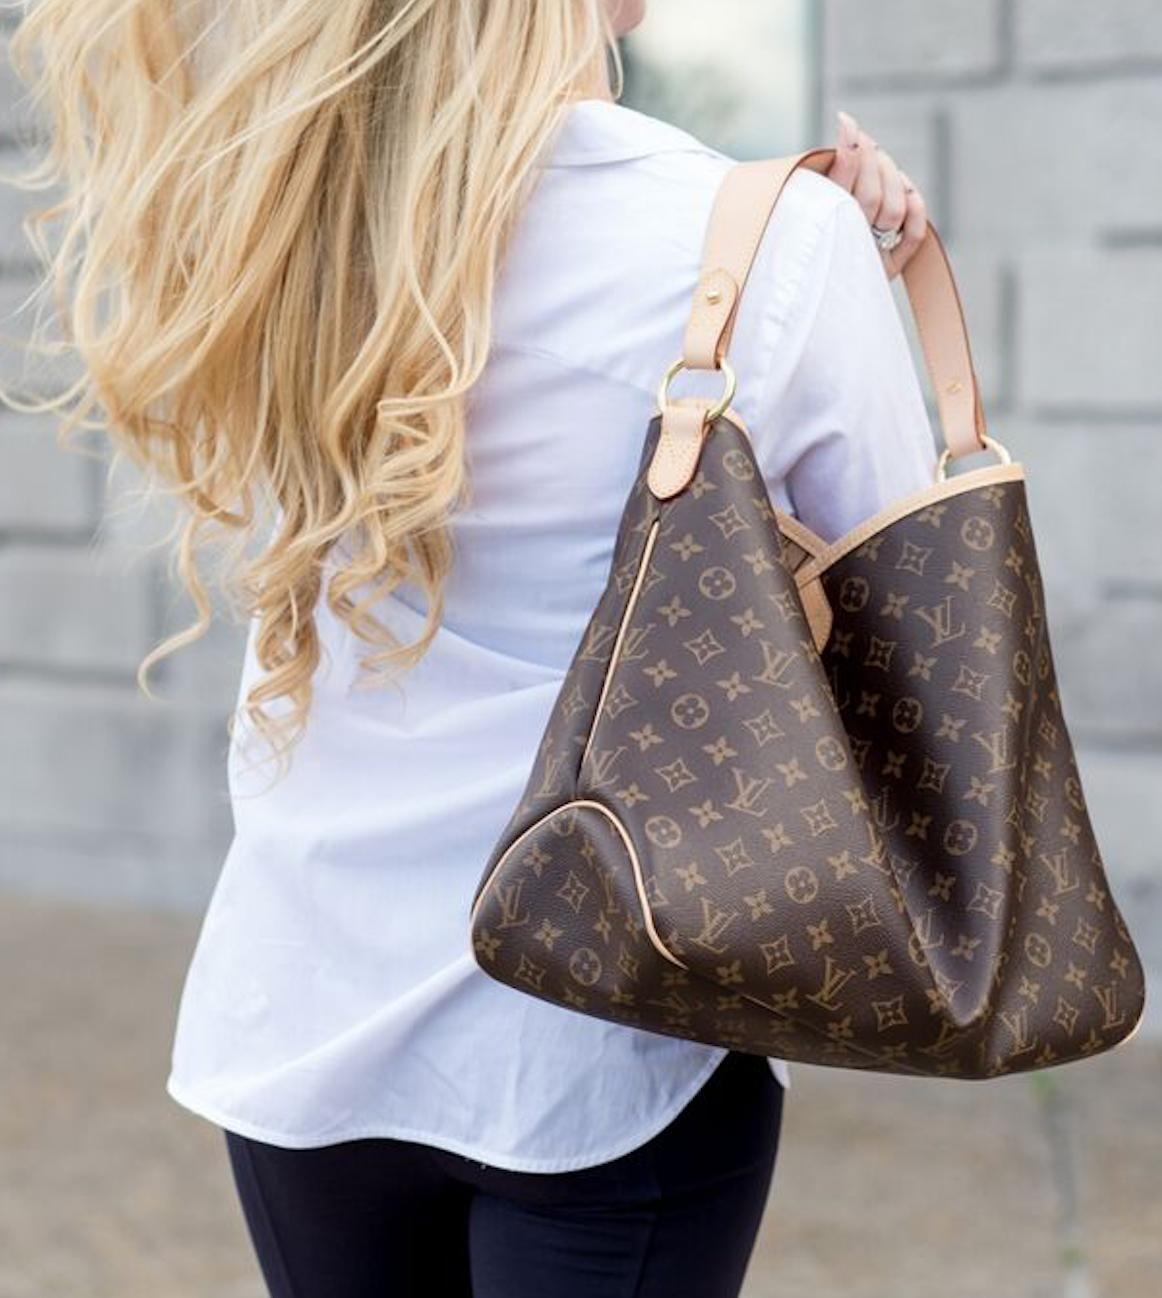 Buy, sell and consign authentic, pre-owned designer bags Love that Bag #louisvuittonhandbags